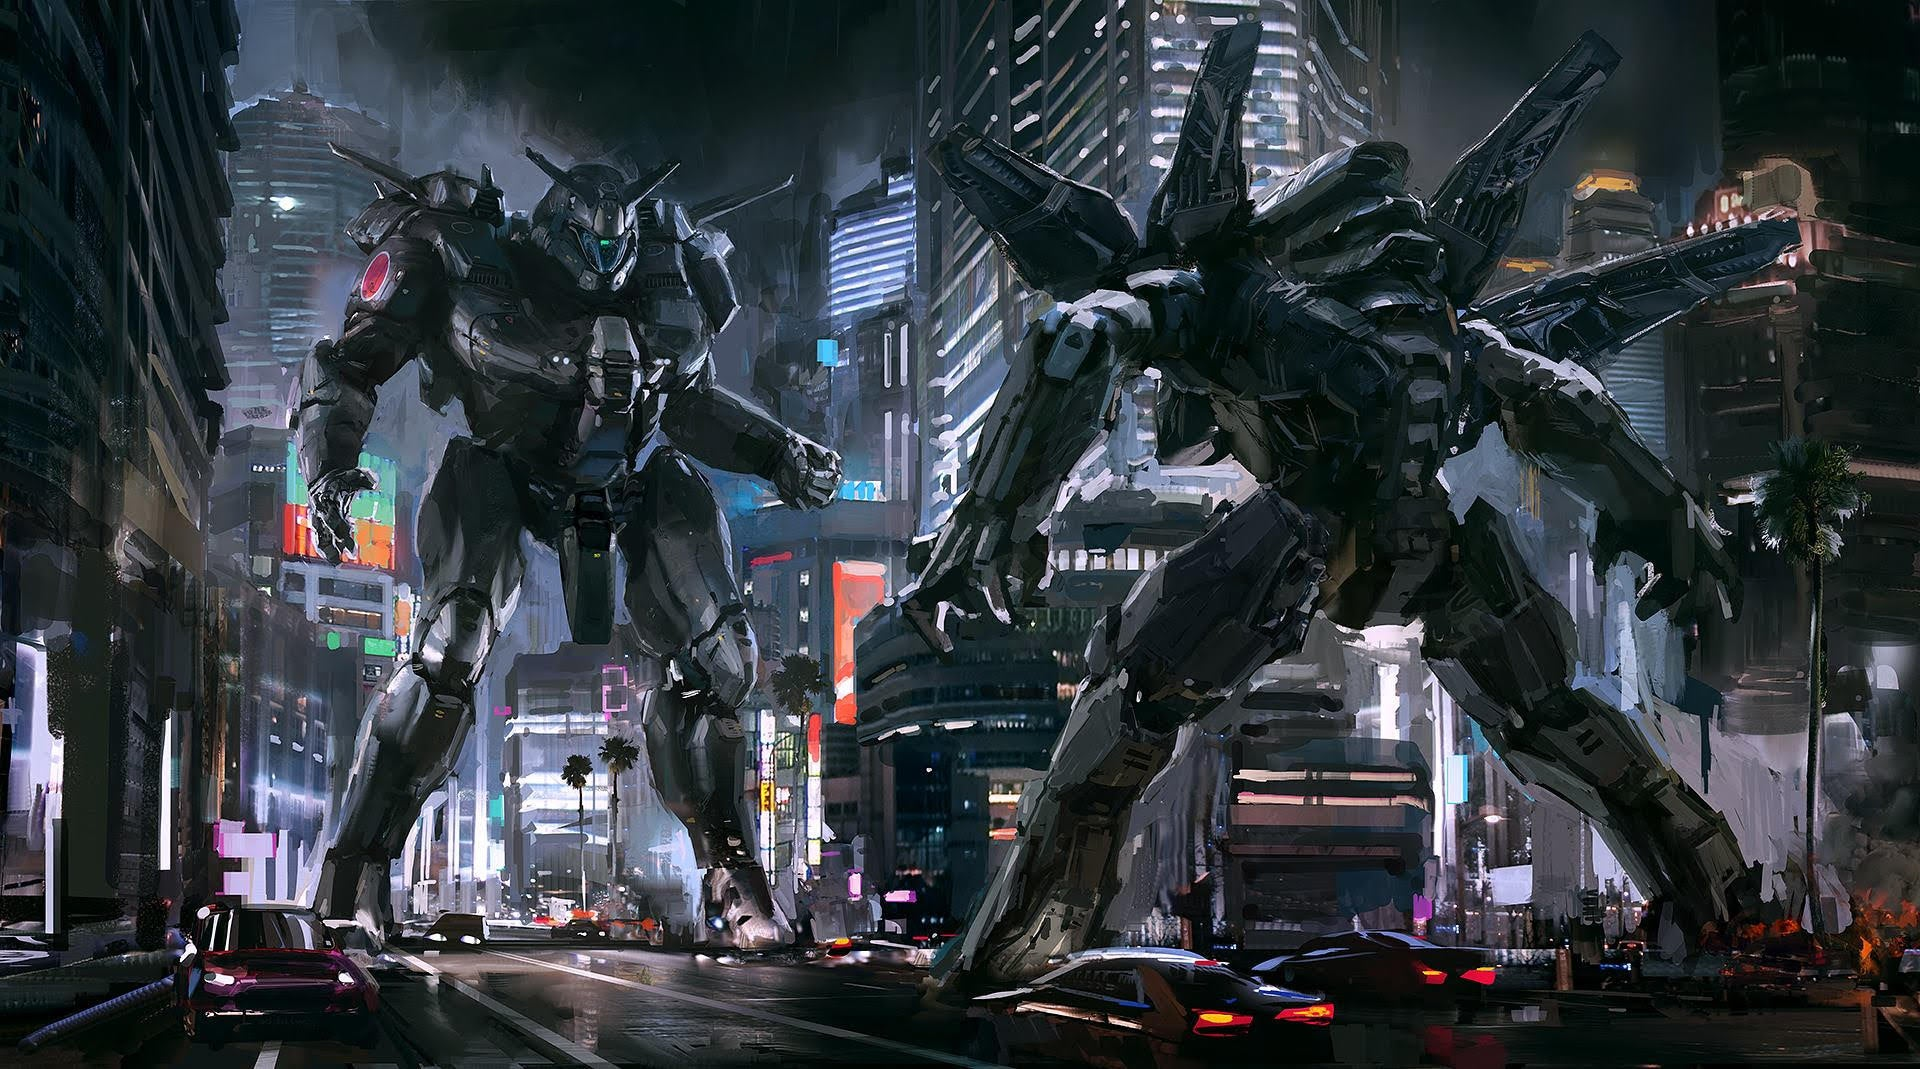 Japan Won WW2, And Now Rules America With Giant Mechs